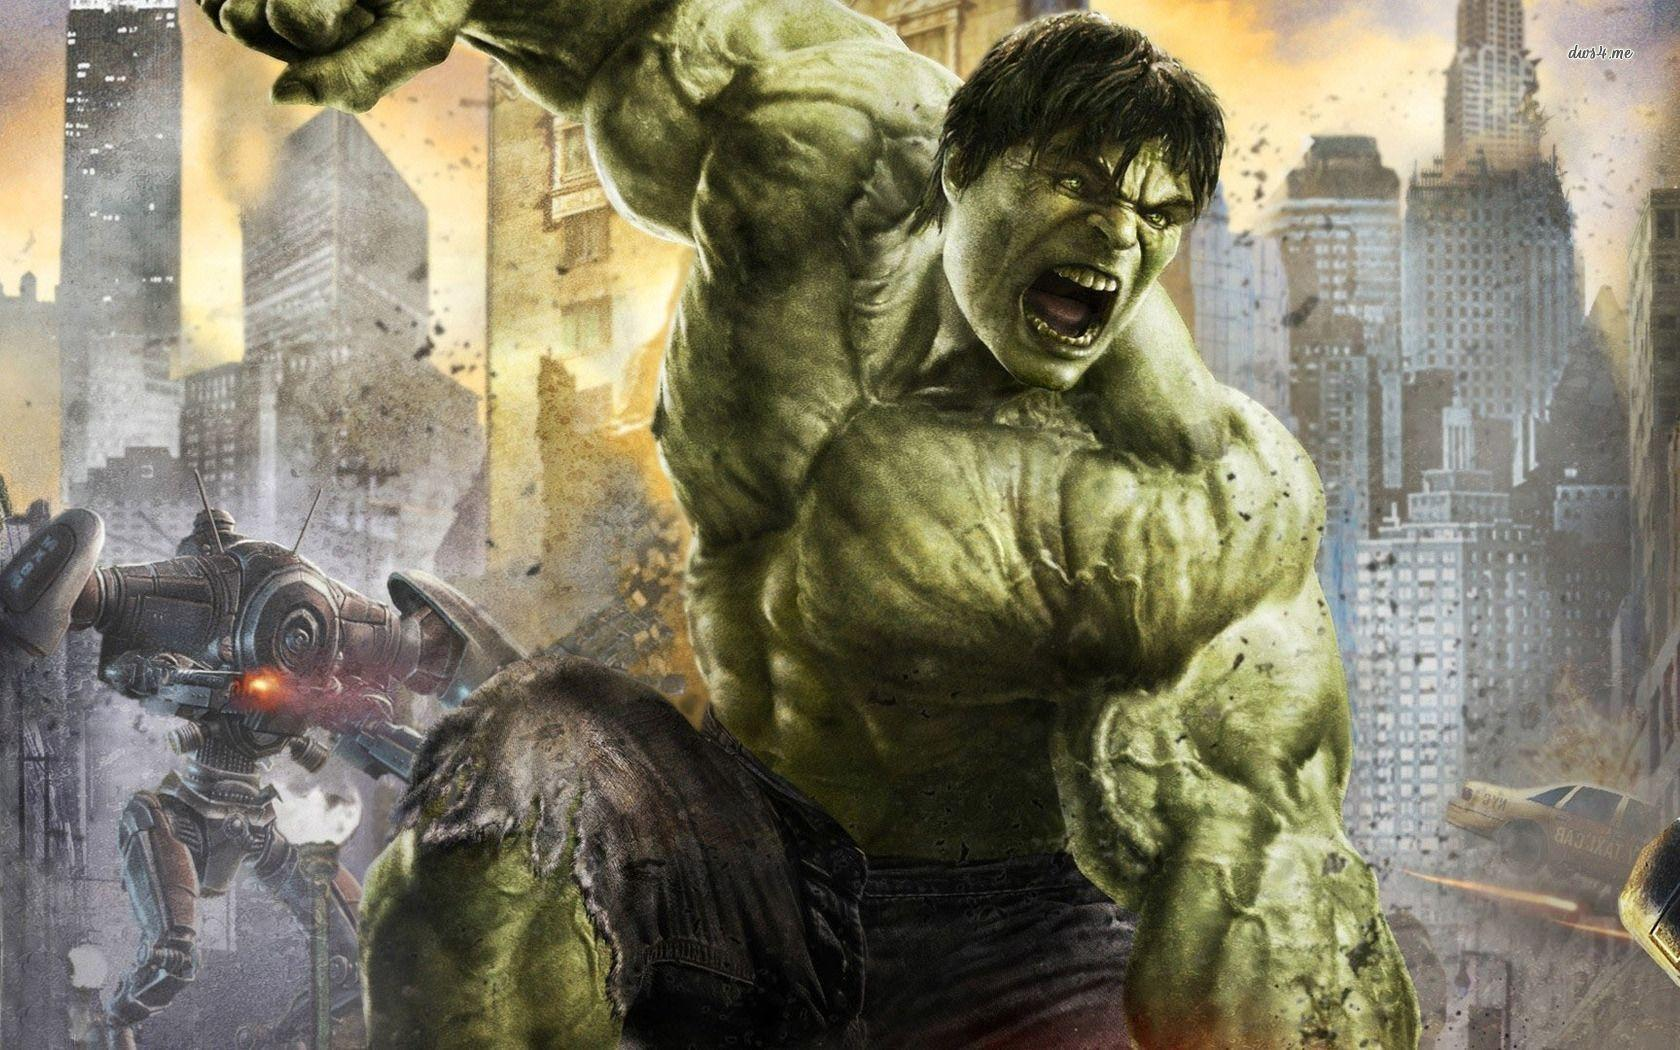 The Incredible Hulk wallpaper - Movie wallpapers - #